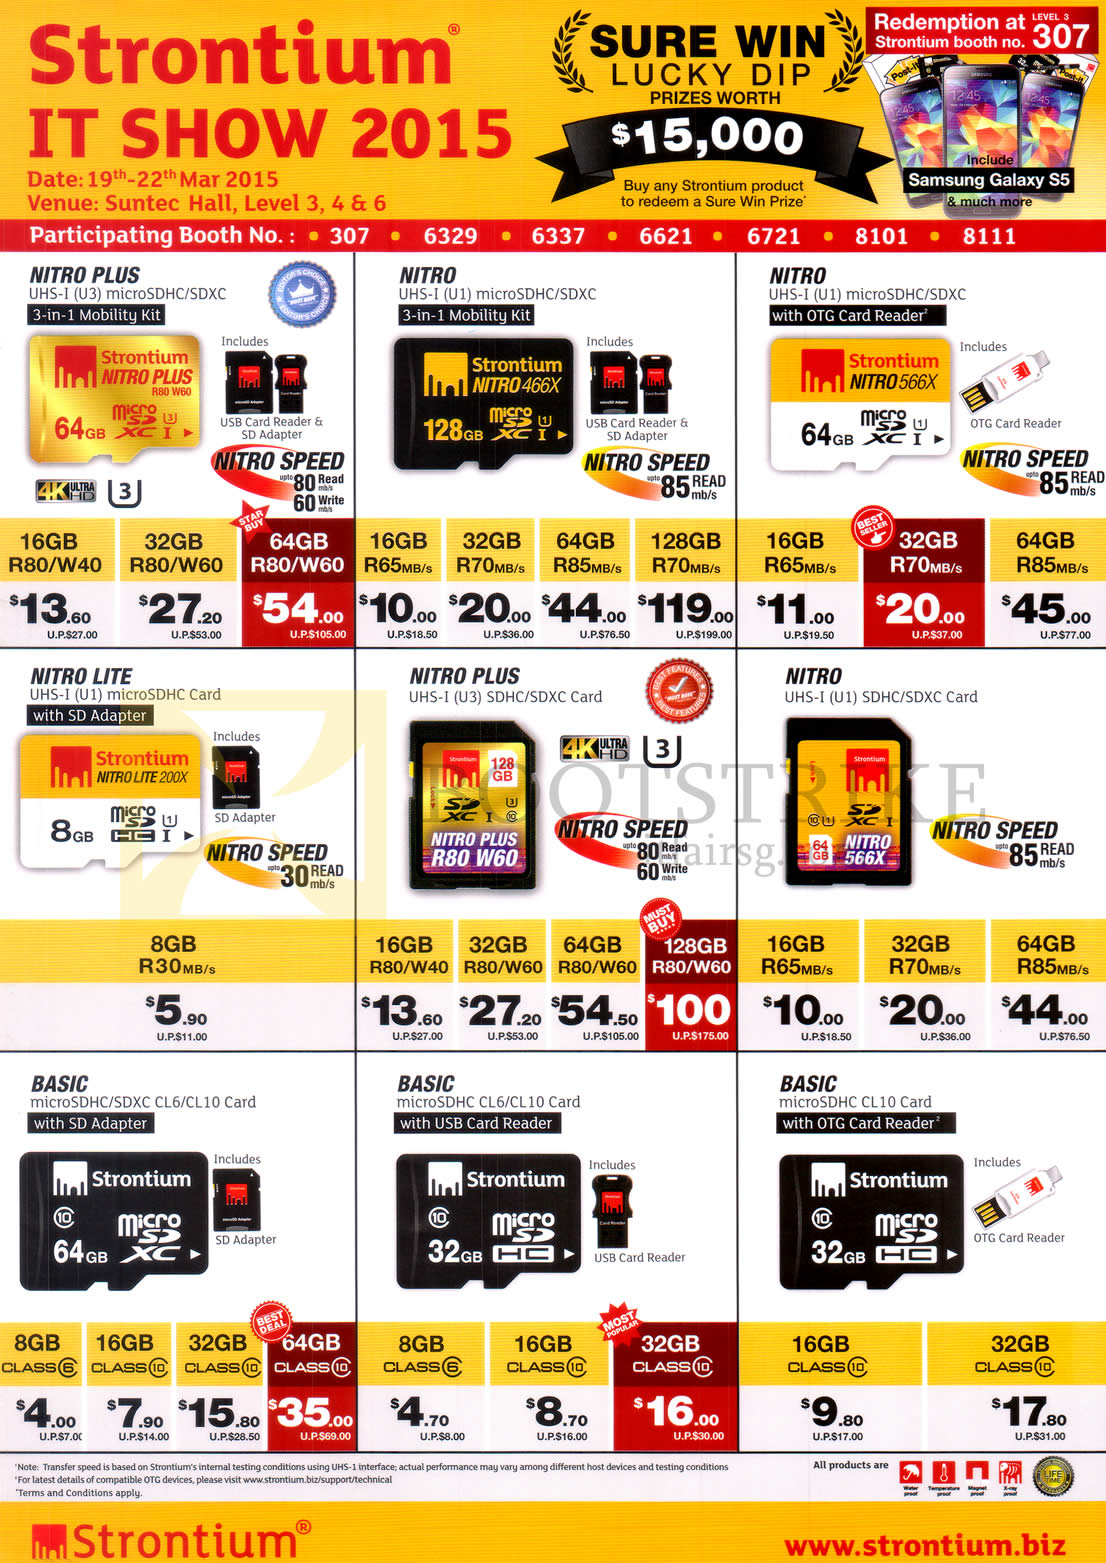 IT SHOW 2015 price list image brochure of Strontium Flash Memory Cards, Nitro Lite Plus, MicroSD, SDXC, Basic, Mobility Kid, Card Reader